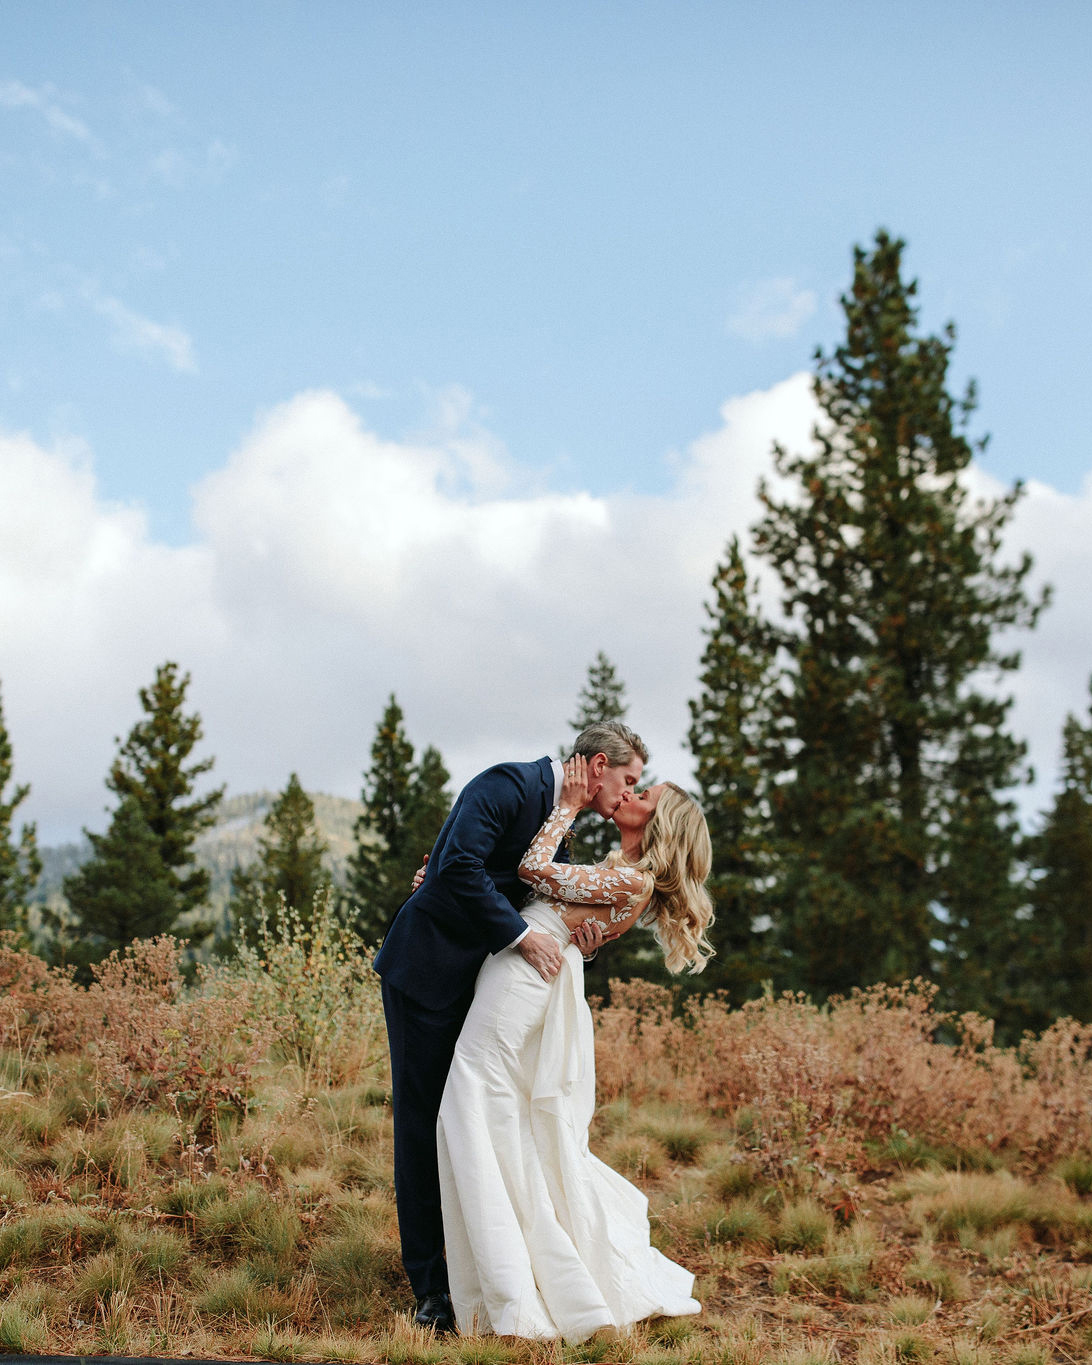 clare tim wedding couple kissing in fall setting